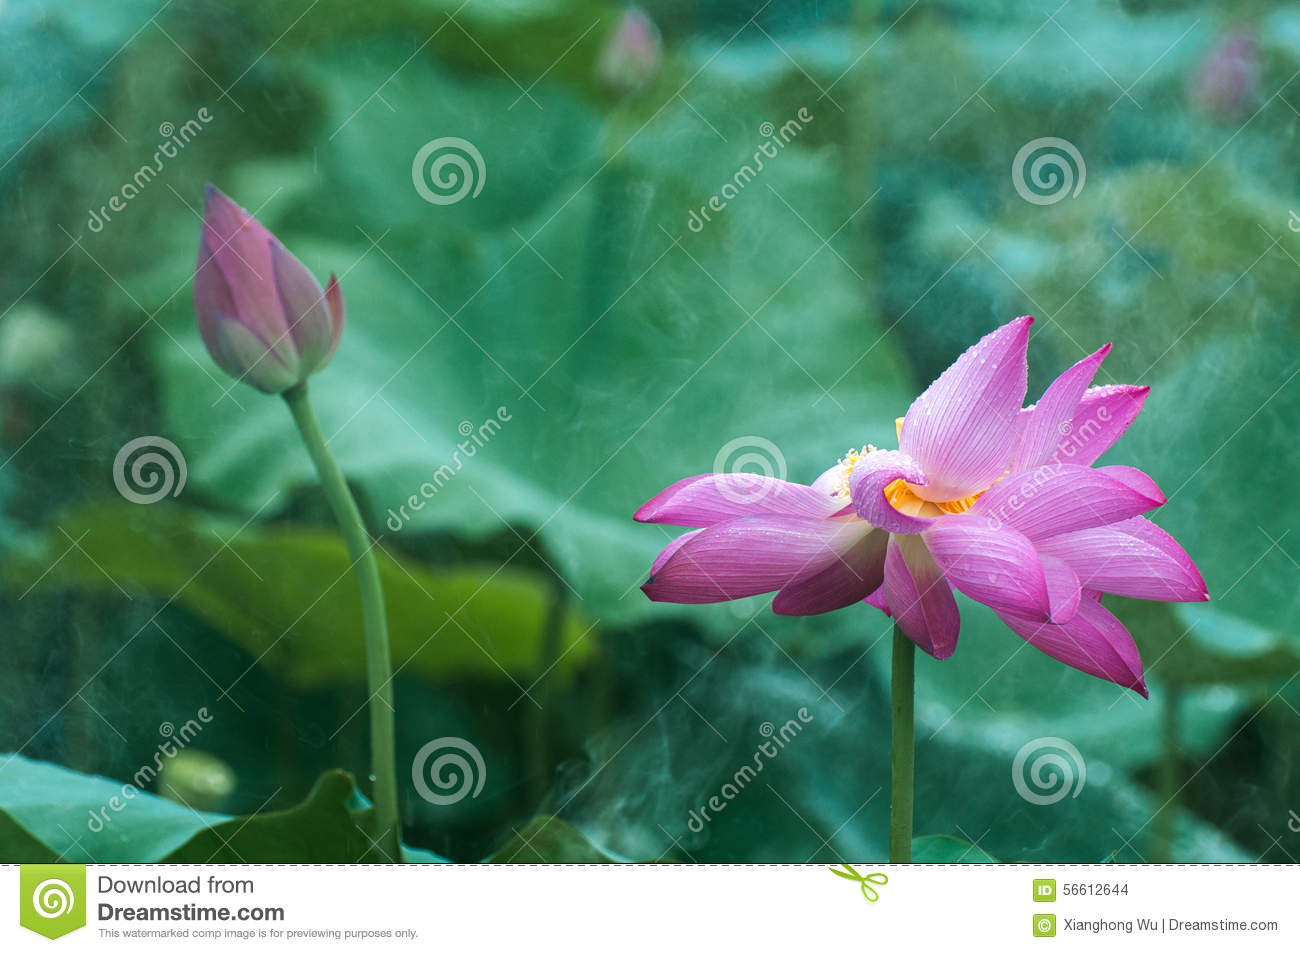 Lotus and bud in the rain stock photo image of foliage 56612644 lotus and bud in the rain izmirmasajfo